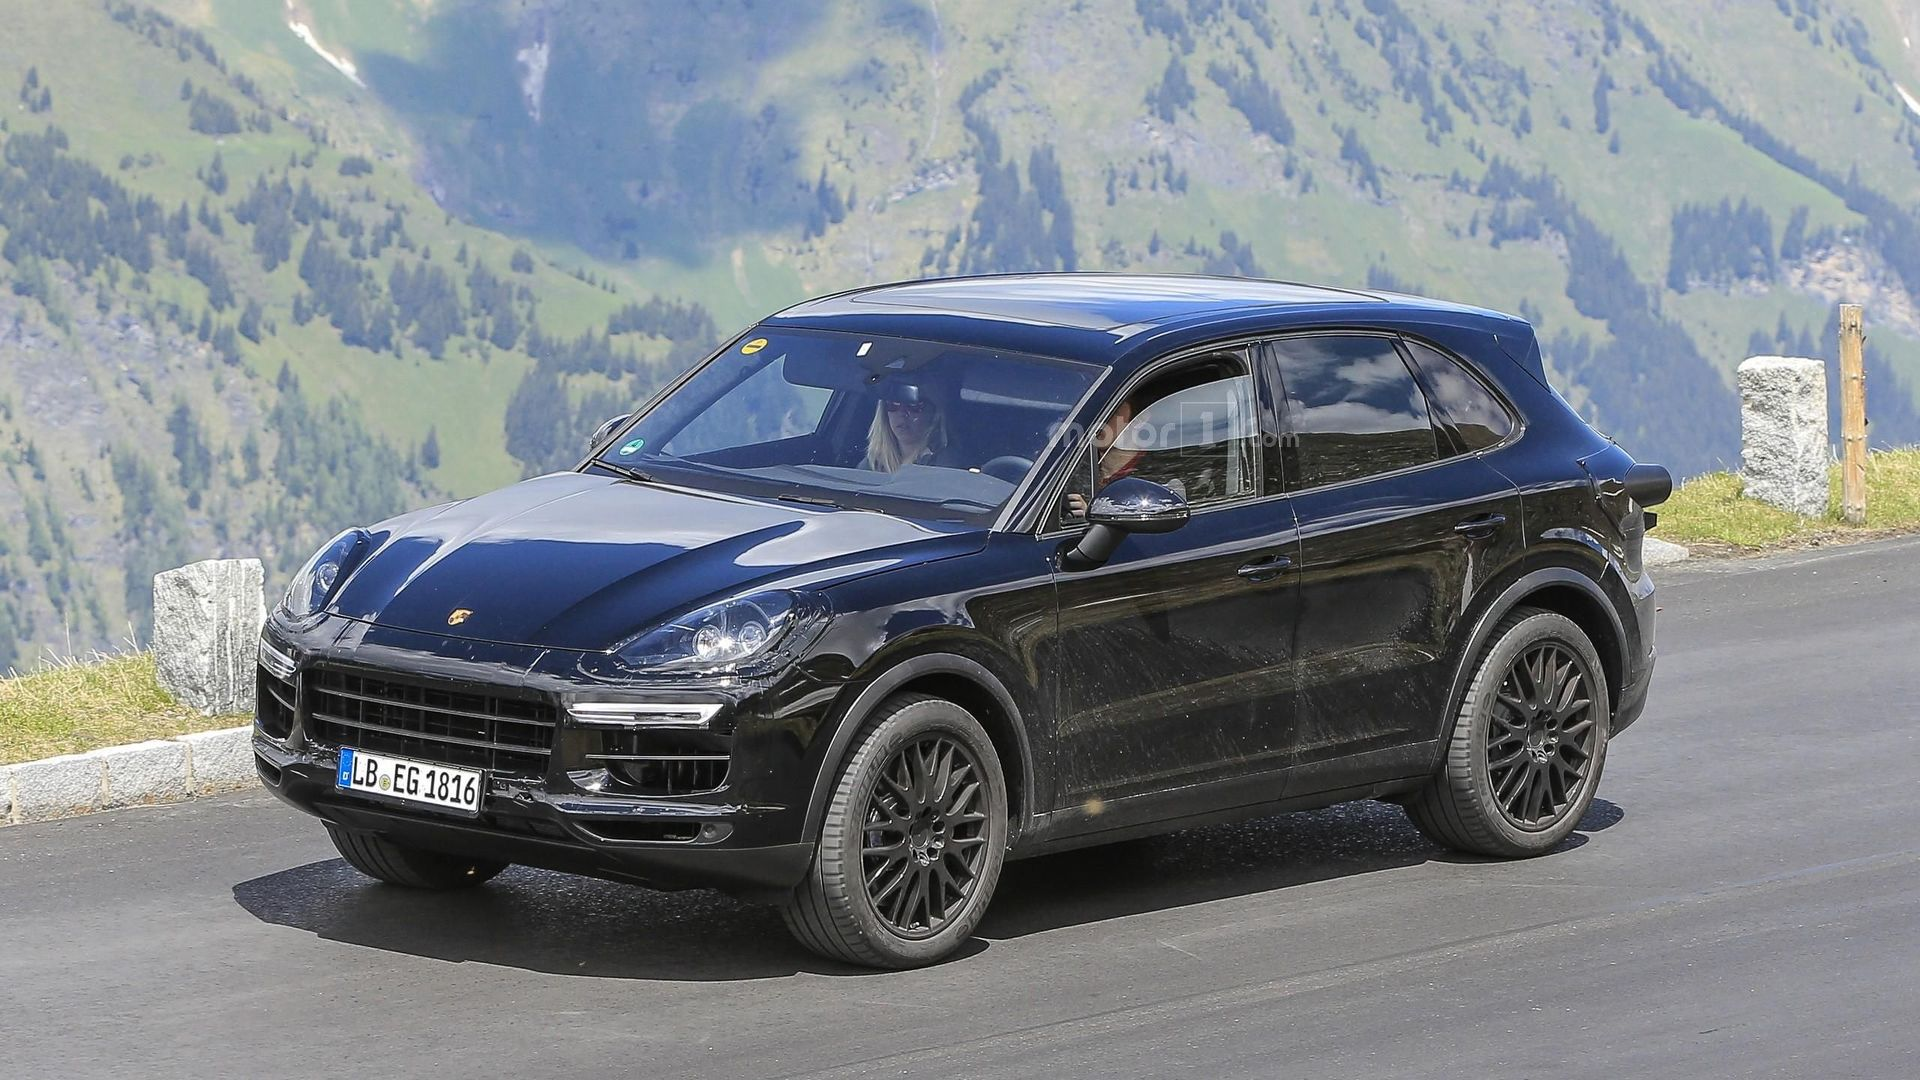 2018 porsche cayenne spied testing at the ring and in the alps. Black Bedroom Furniture Sets. Home Design Ideas